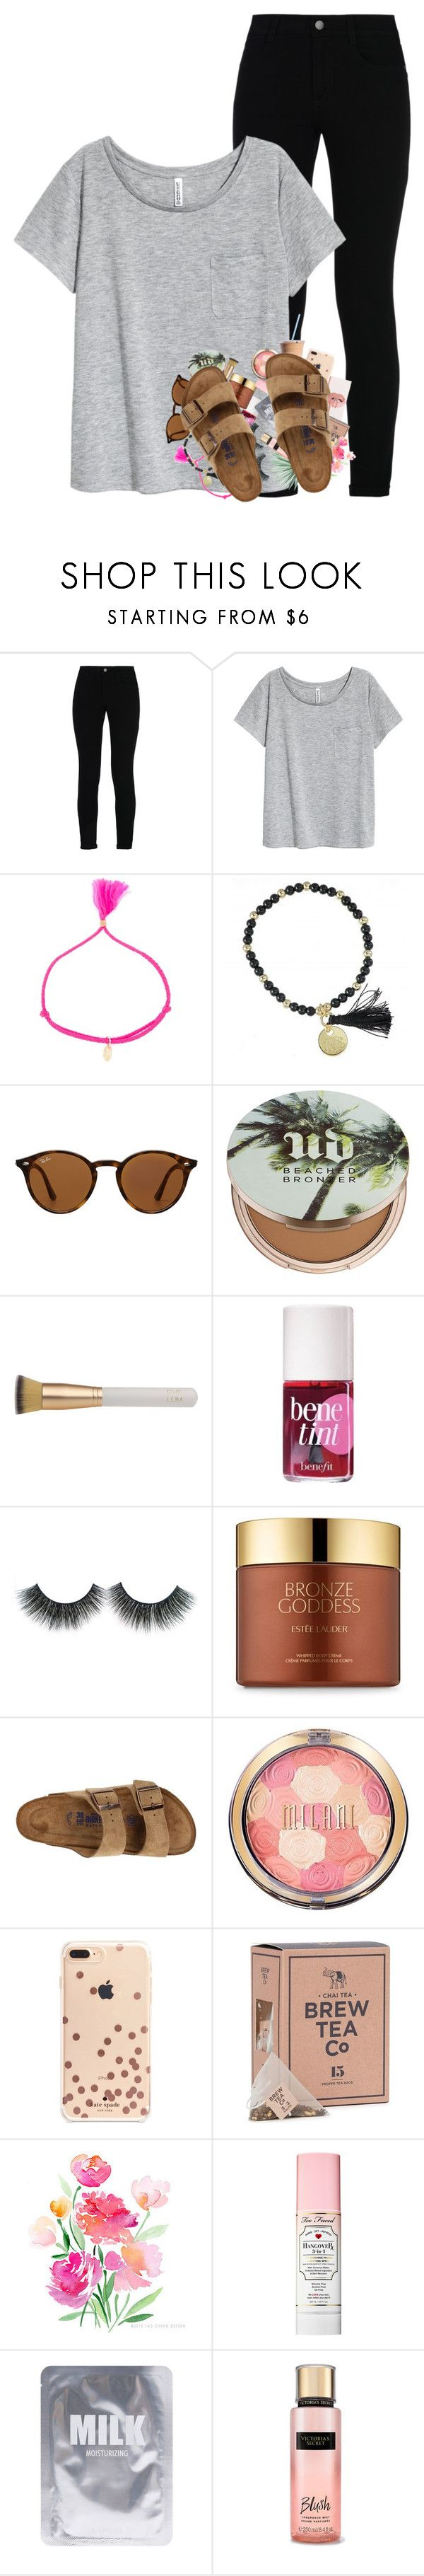 """So thankful for the 5 day weekend!!"" by kat-attack ❤ liked on Polyvore featuring STELLA McCARTNEY, Luis Morais, Ray-Ban, Urban Decay, Eve Lom, Estée Lauder, Birkenstock, Kate Spade, Agave and Too Faced Cosmetics"